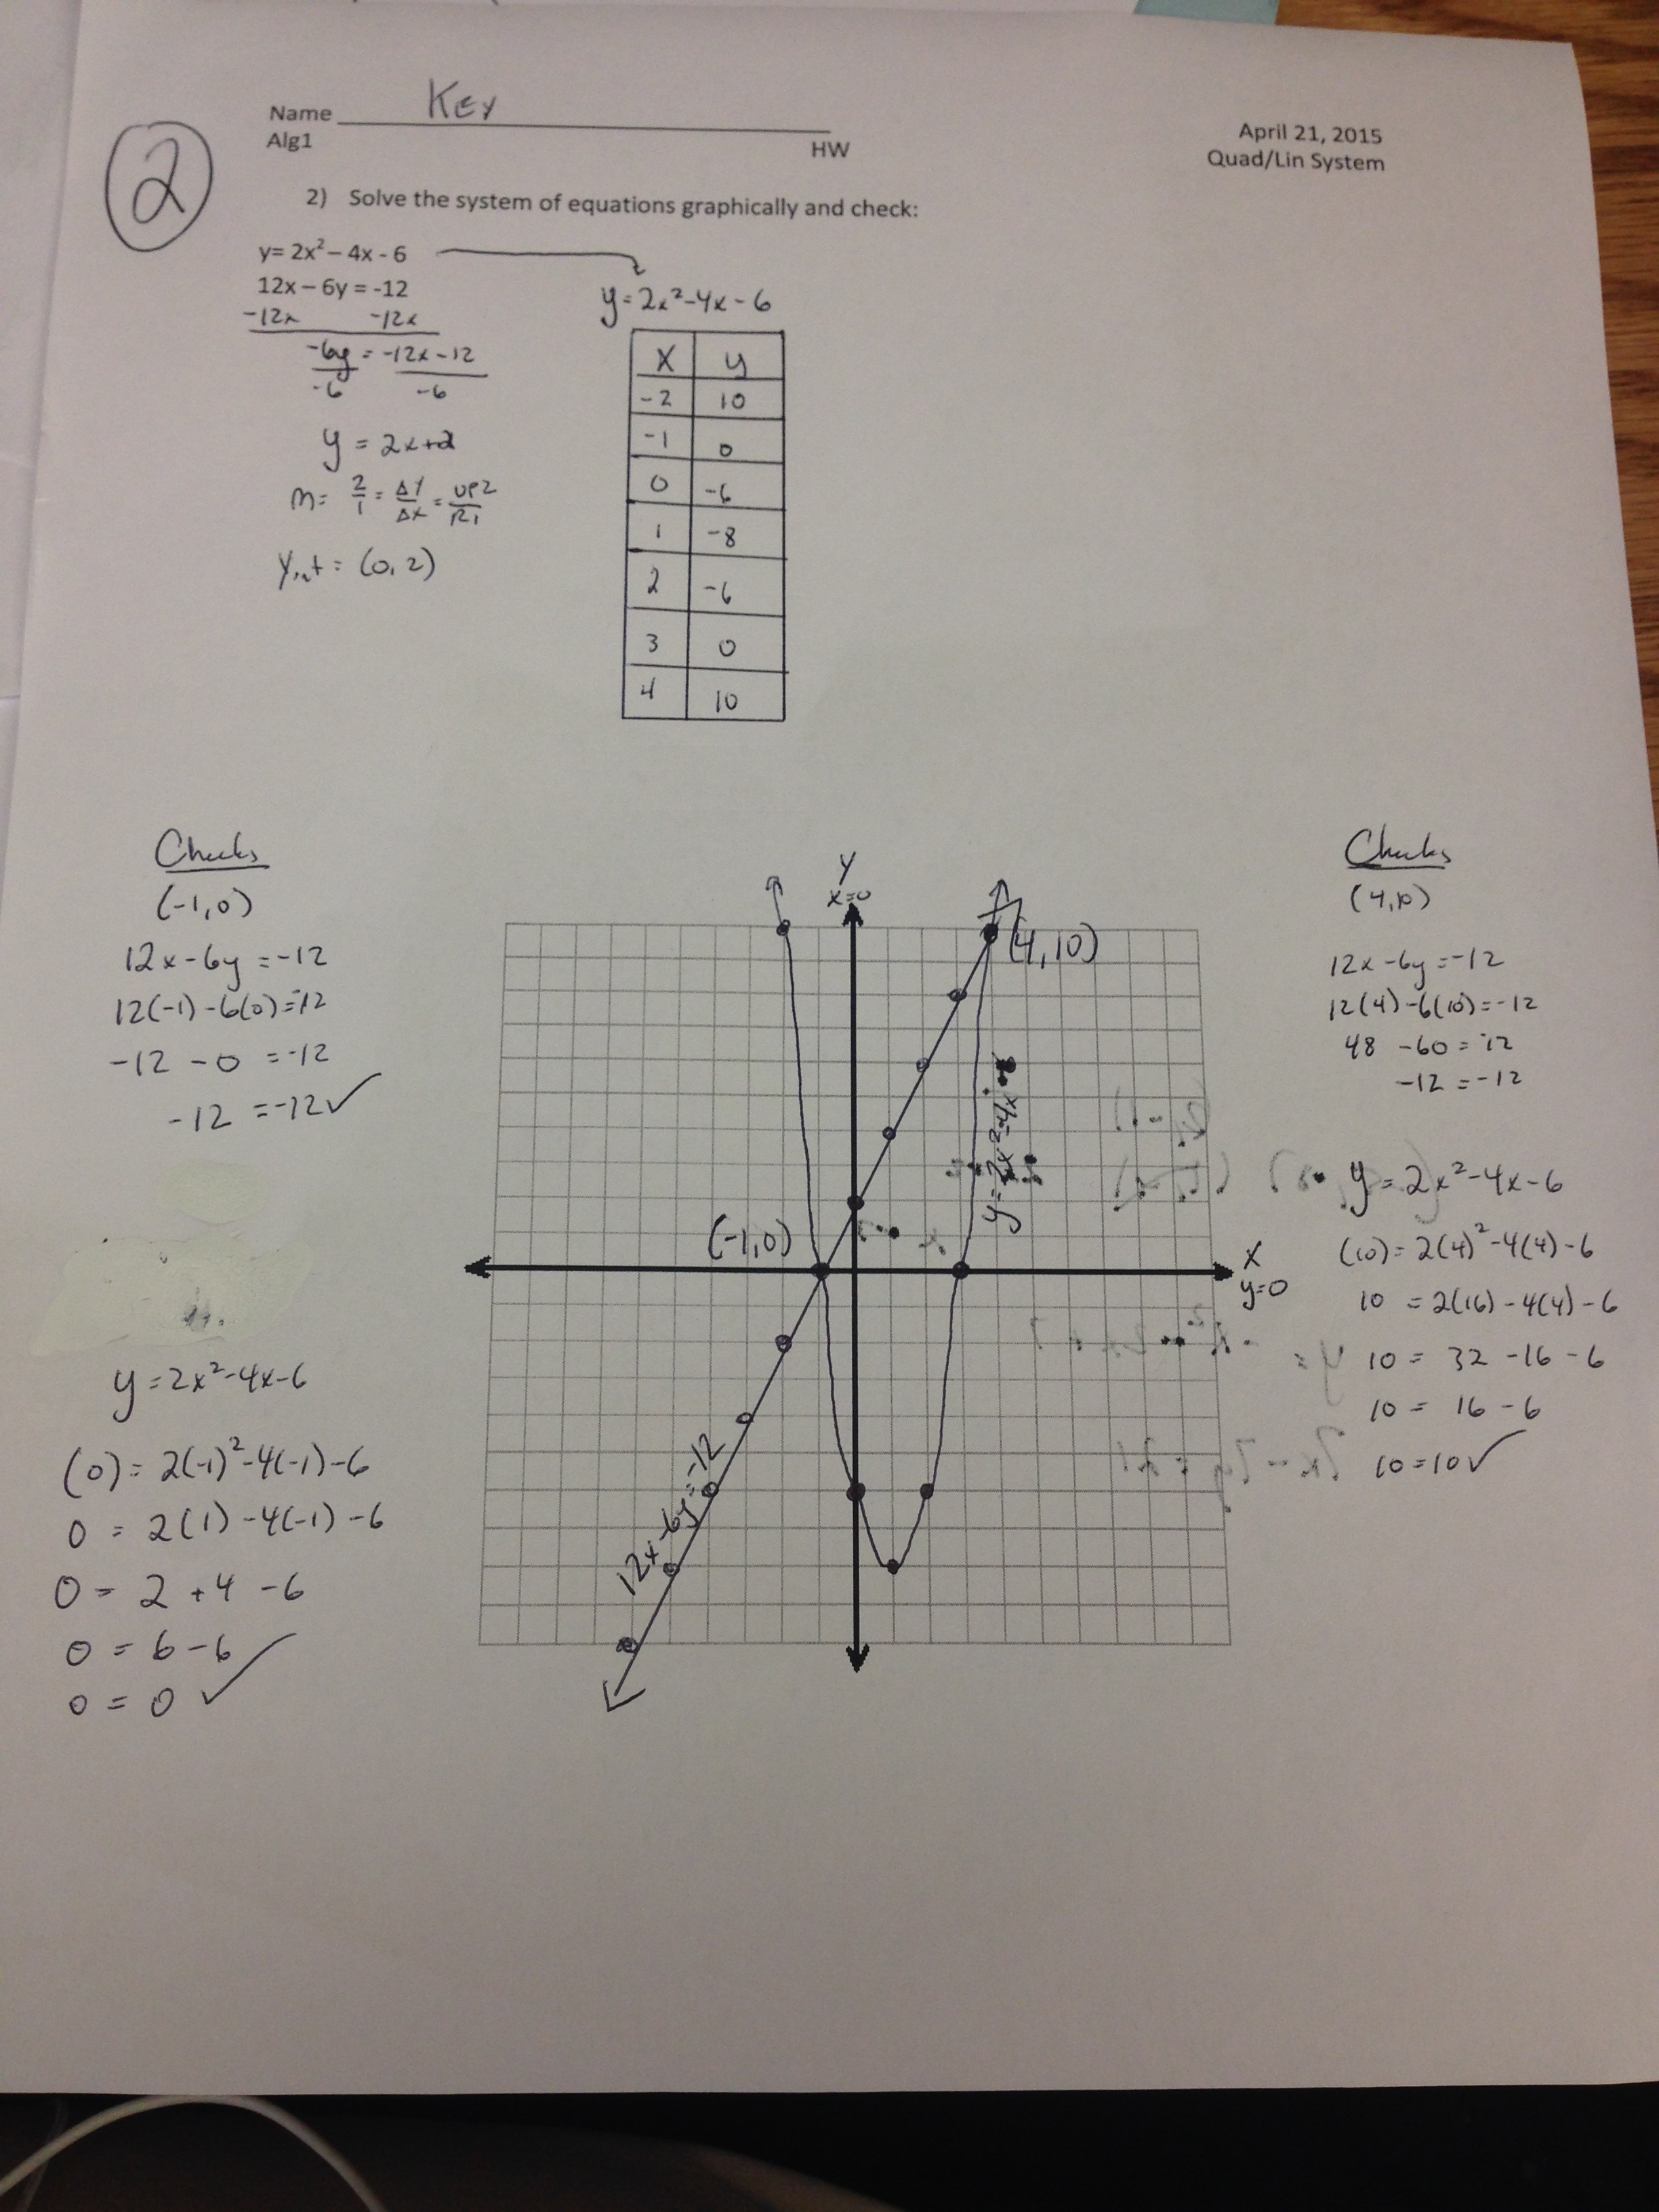 sfponline uploads76 – Systems of Linear and Quadratic Equations Worksheet